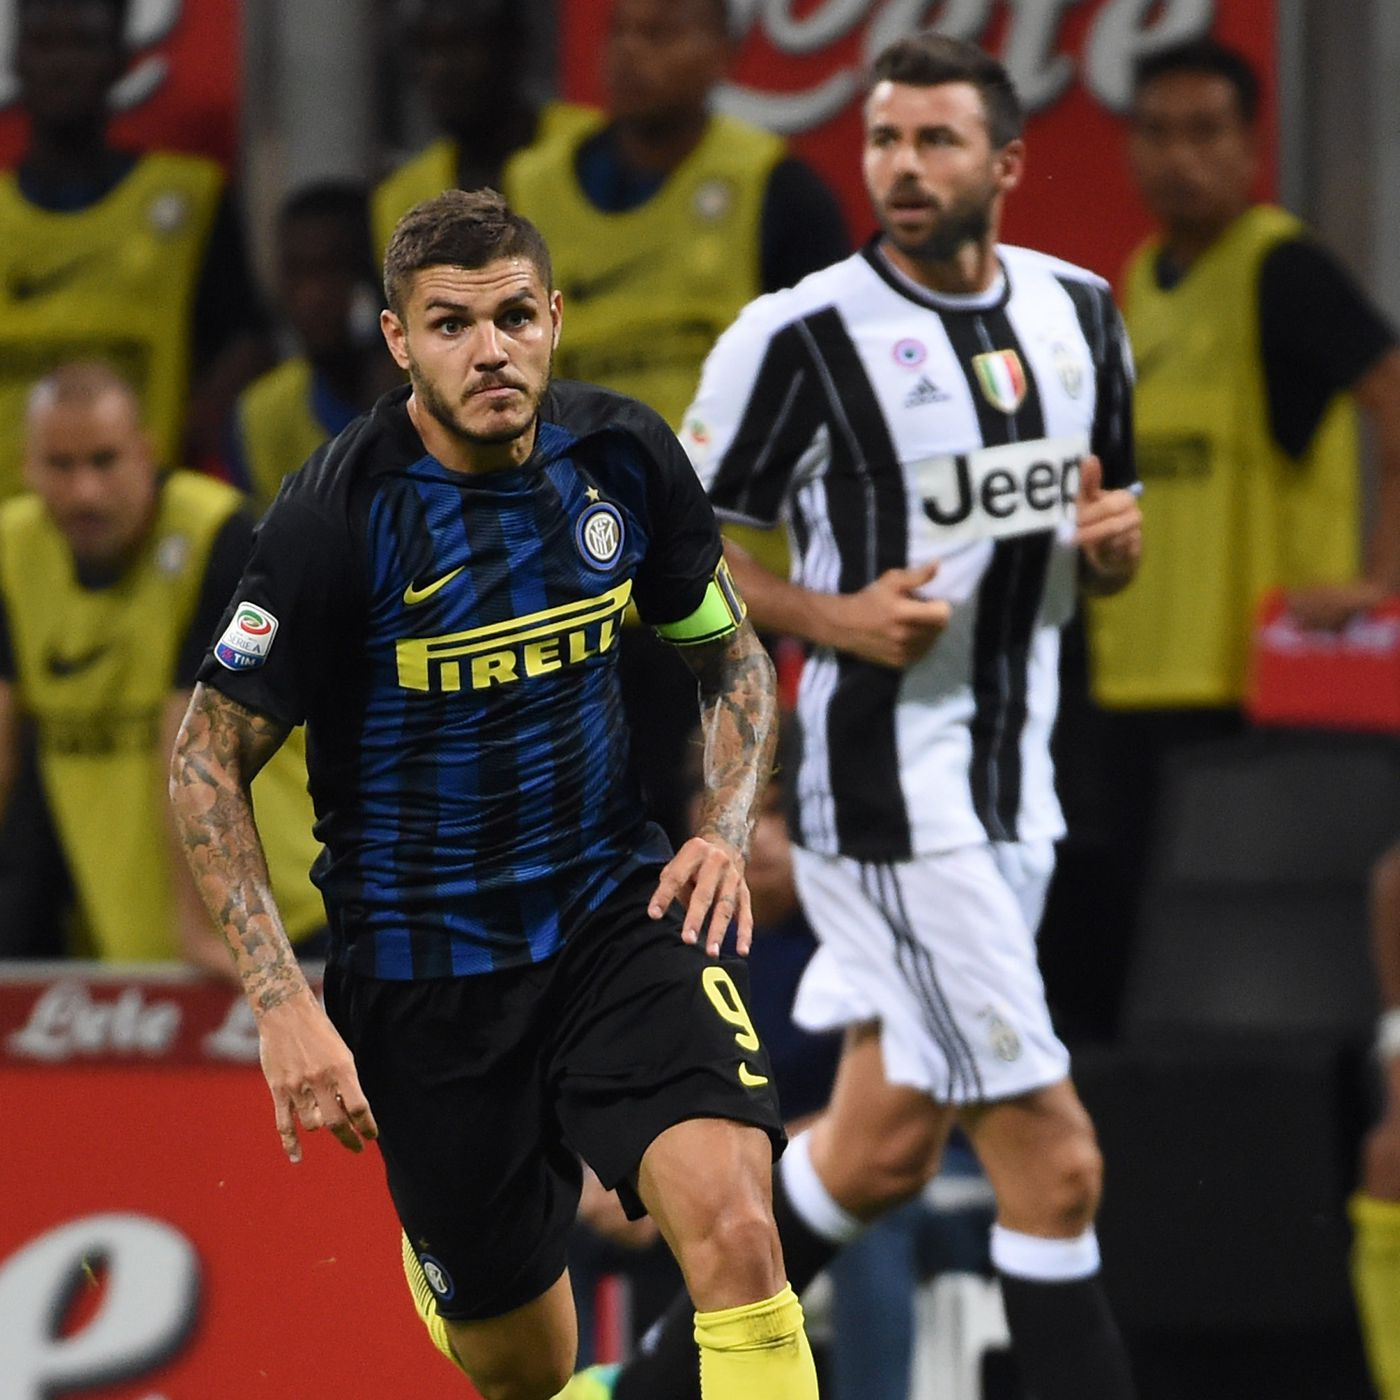 Juventus Vs Inter Milan 2017 Live Stream Time Tv Schedule And How To Watch Online Sbnation Com